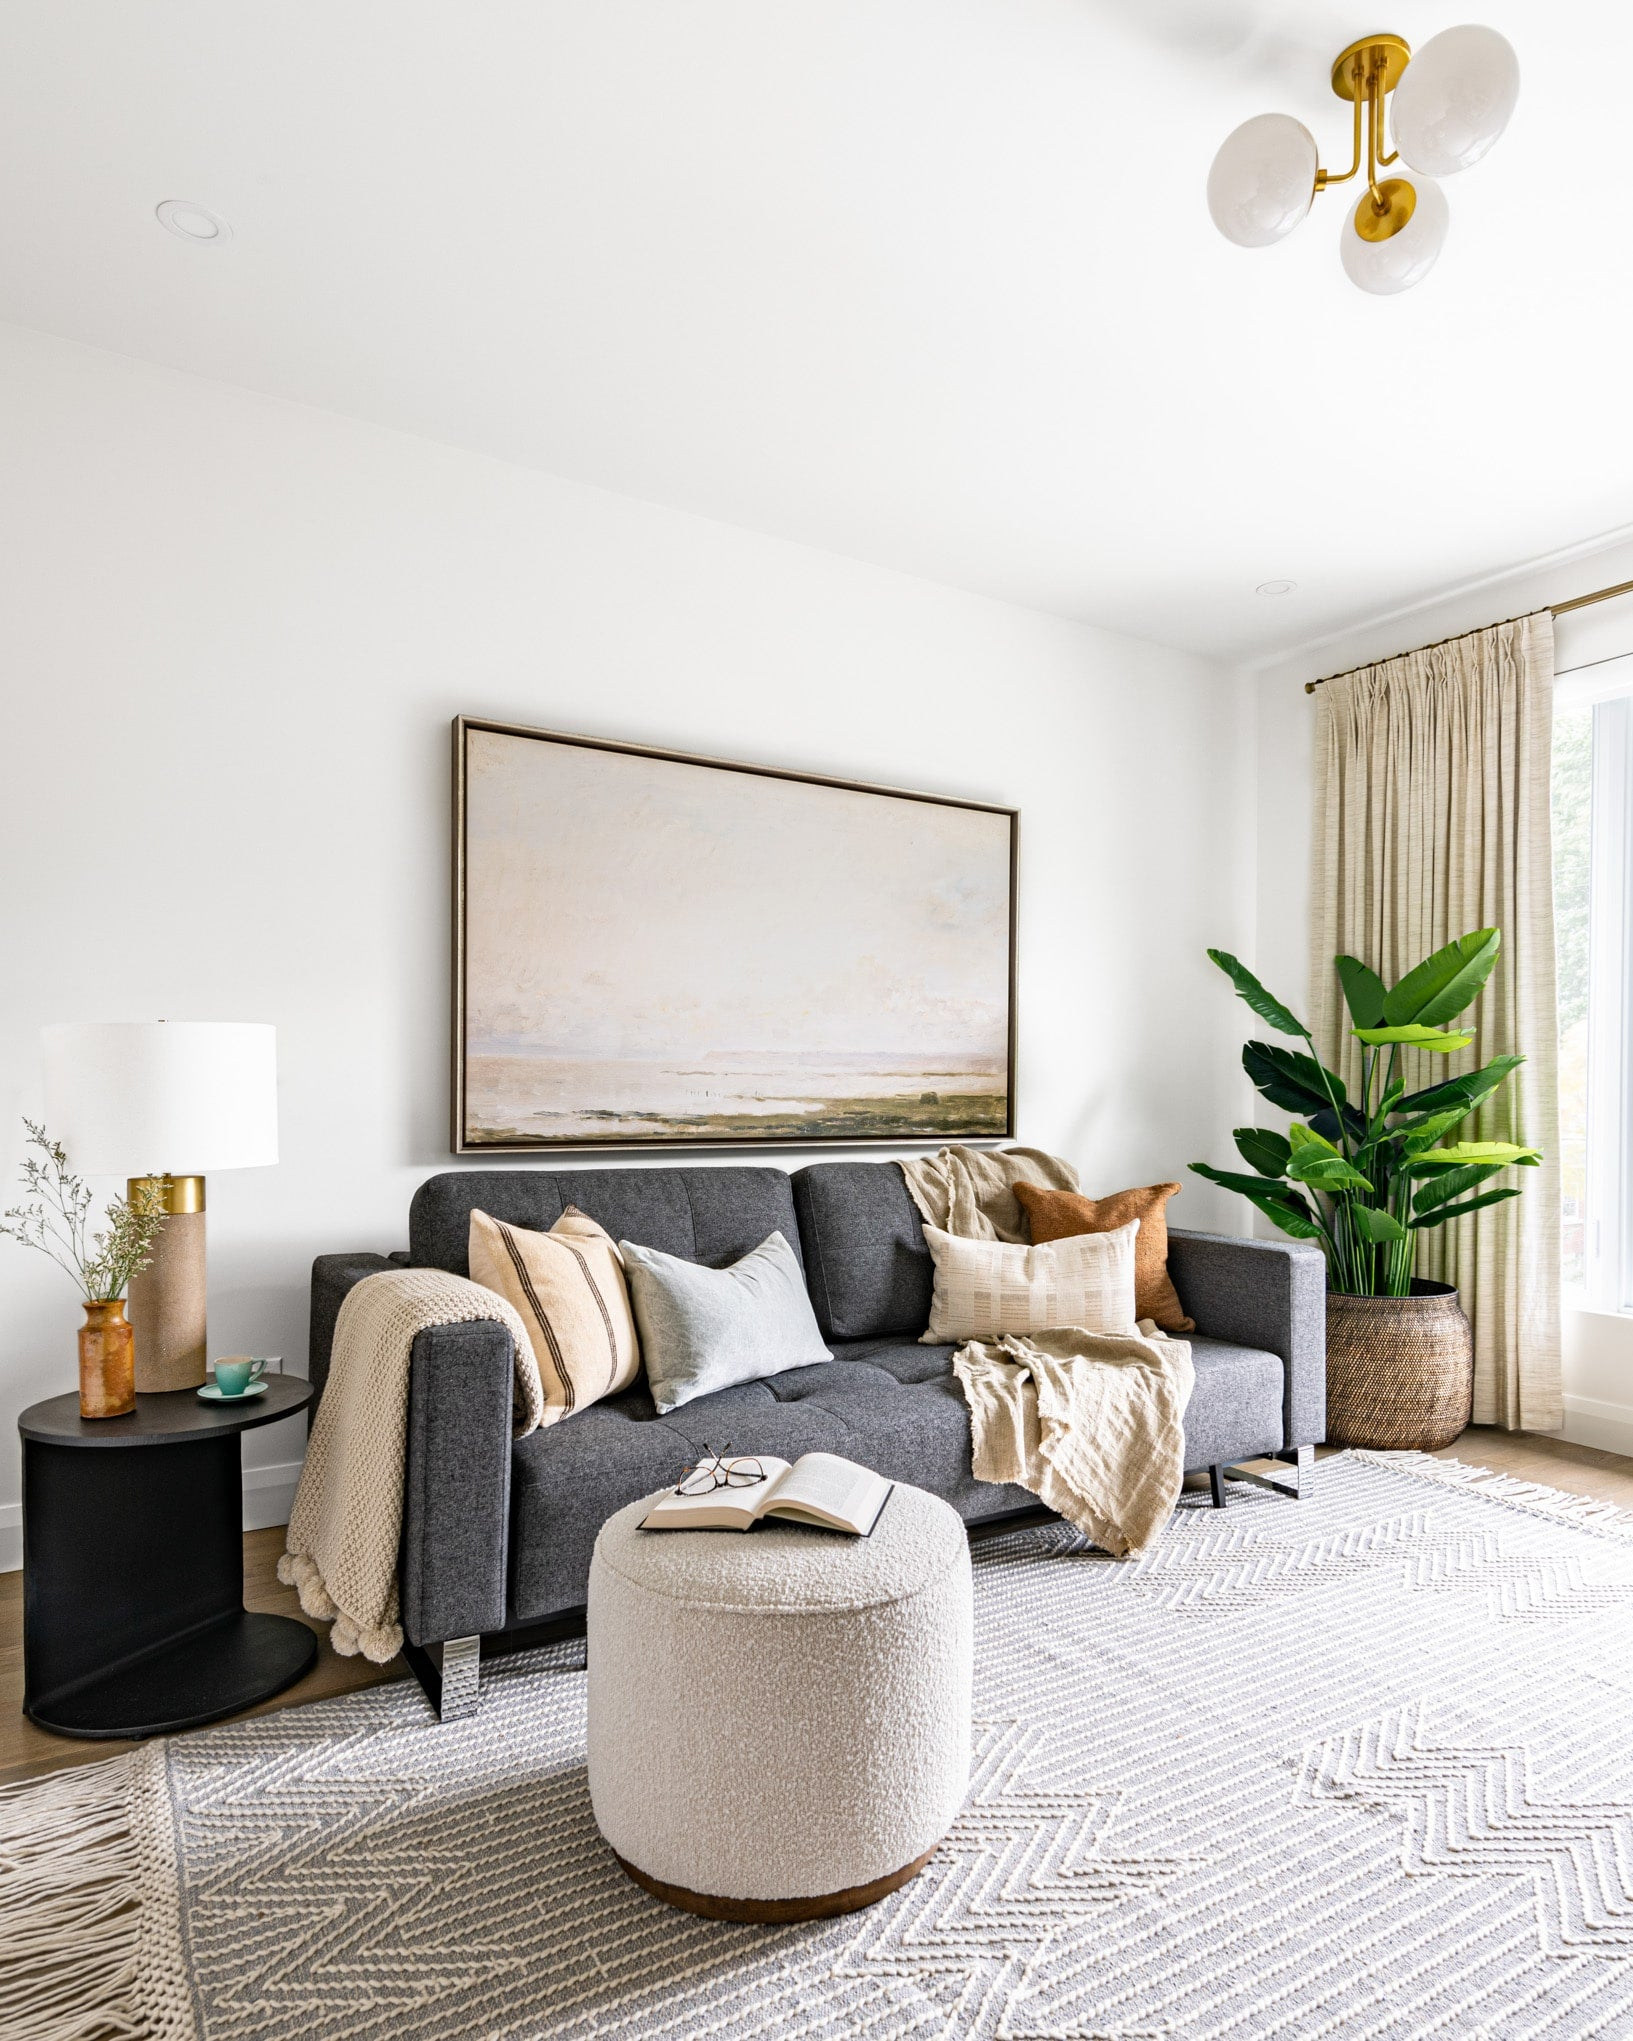 living room couch rug interior design